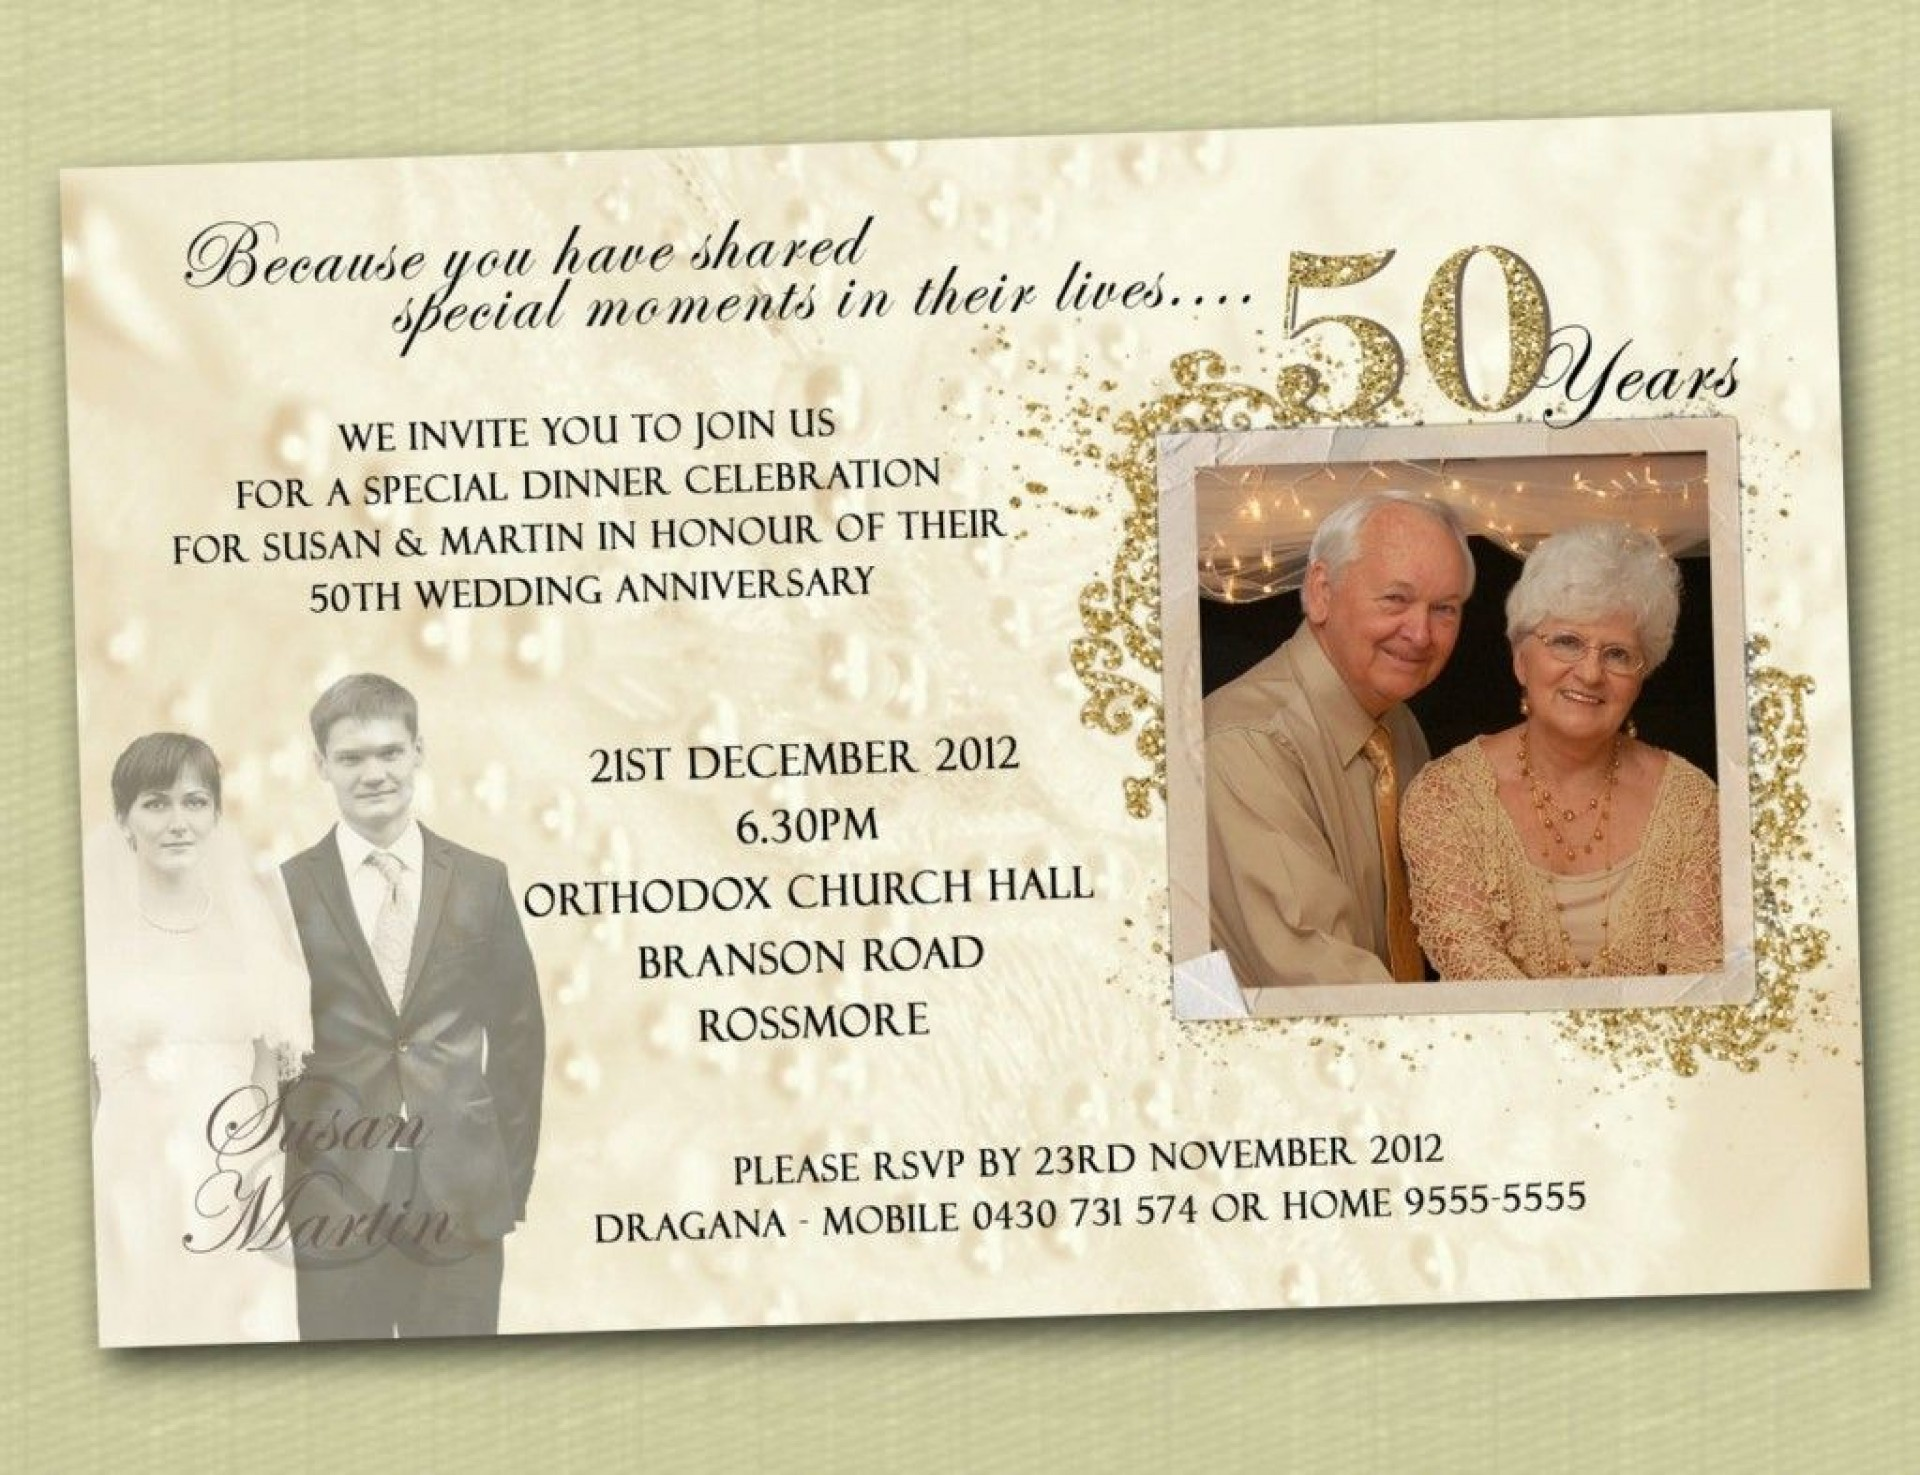 007 Wonderful 50th Wedding Anniversary Invitation Template Sample  Templates Golden Uk Free Download1920